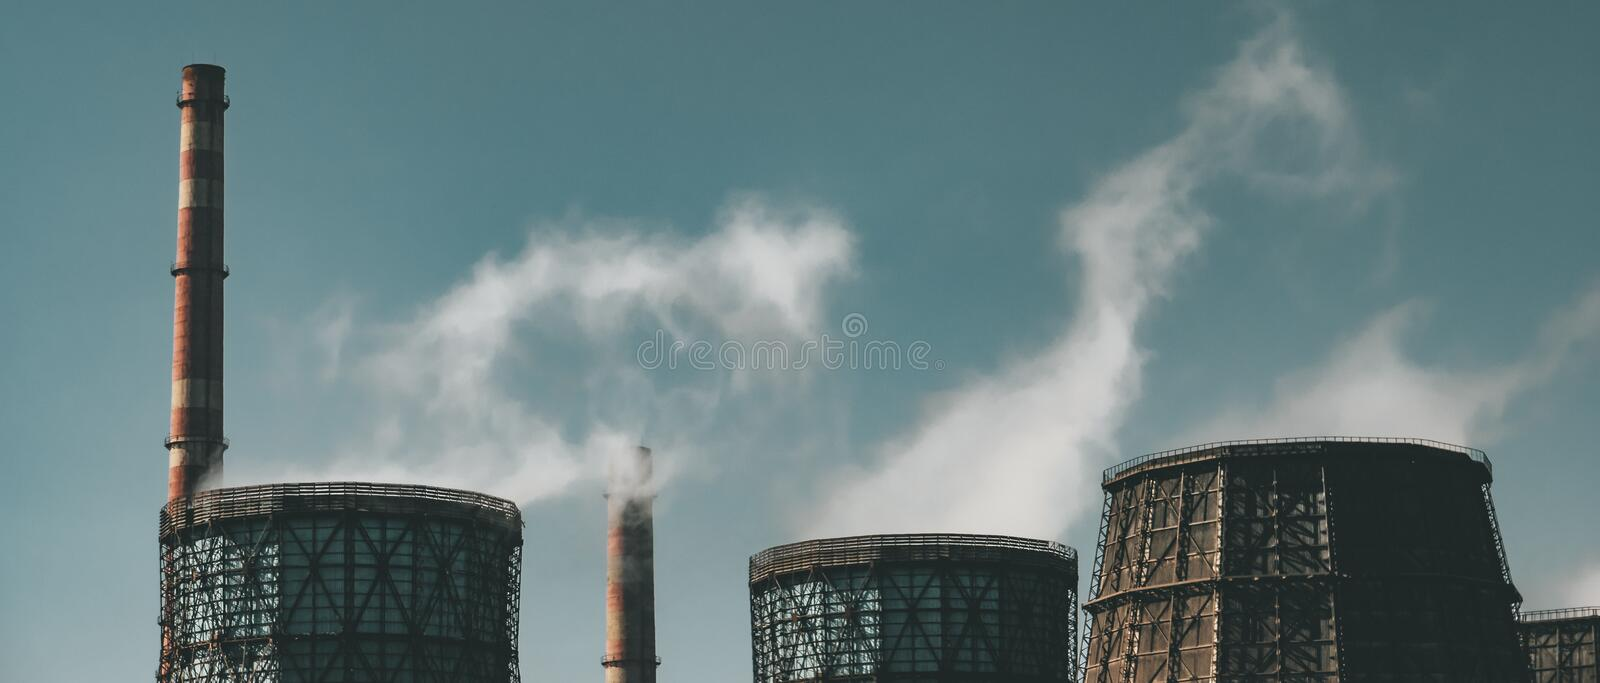 Metallurgical factory with chimneys and smog. Pollution and industry background, panoramic image.  royalty free stock photography